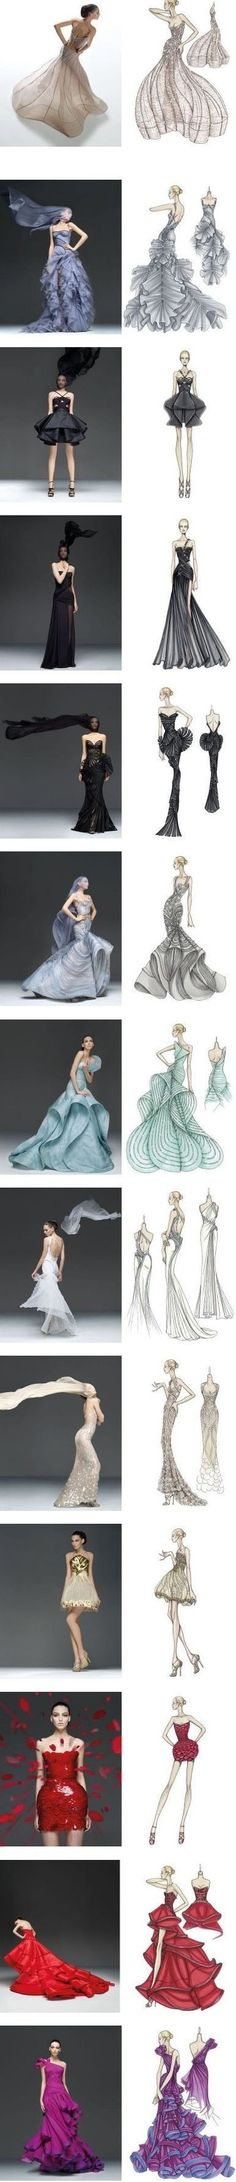 Beautiful examples of fashion illustrations and the garments they are based on: